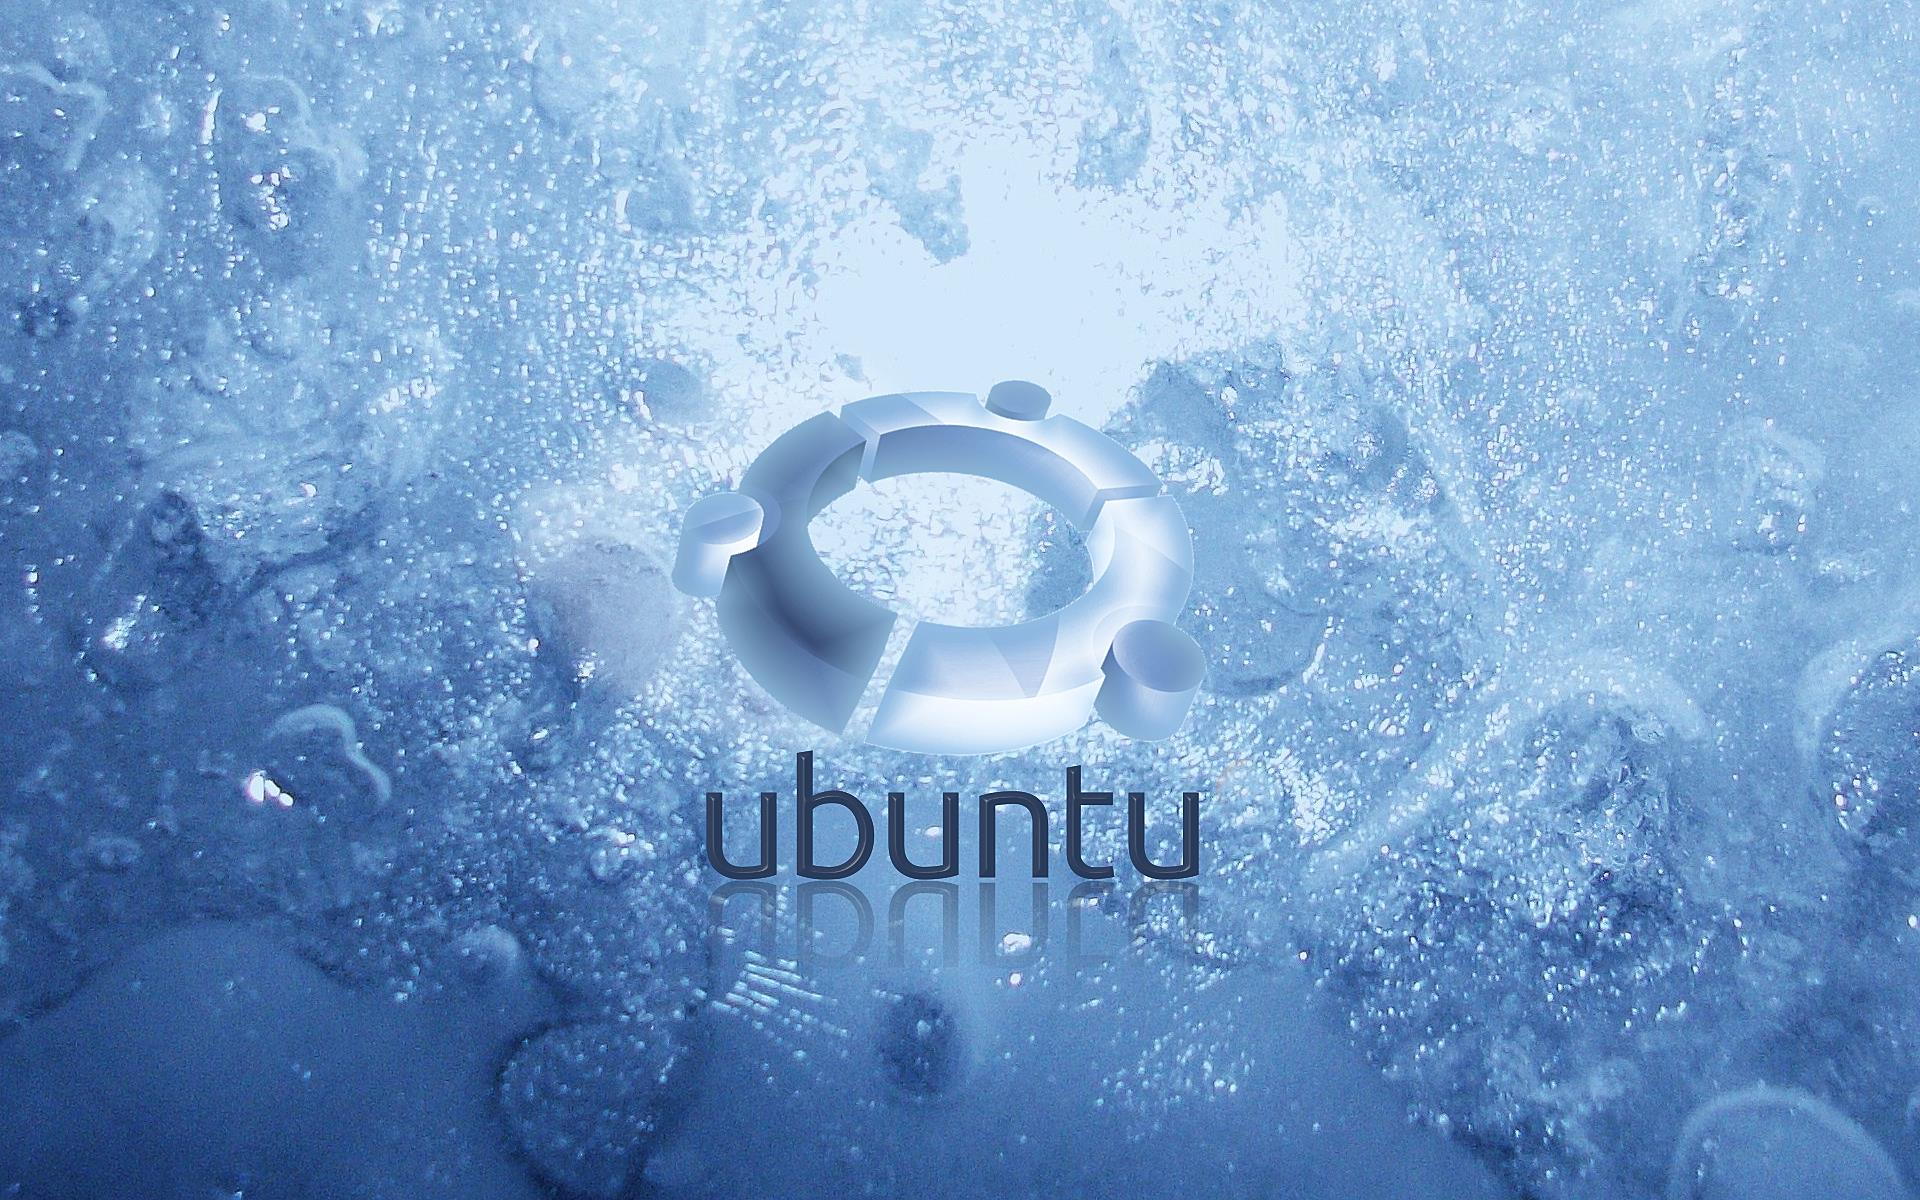 linux-ubuntu-wallpaper-OS-free-hi-tech-Open_2